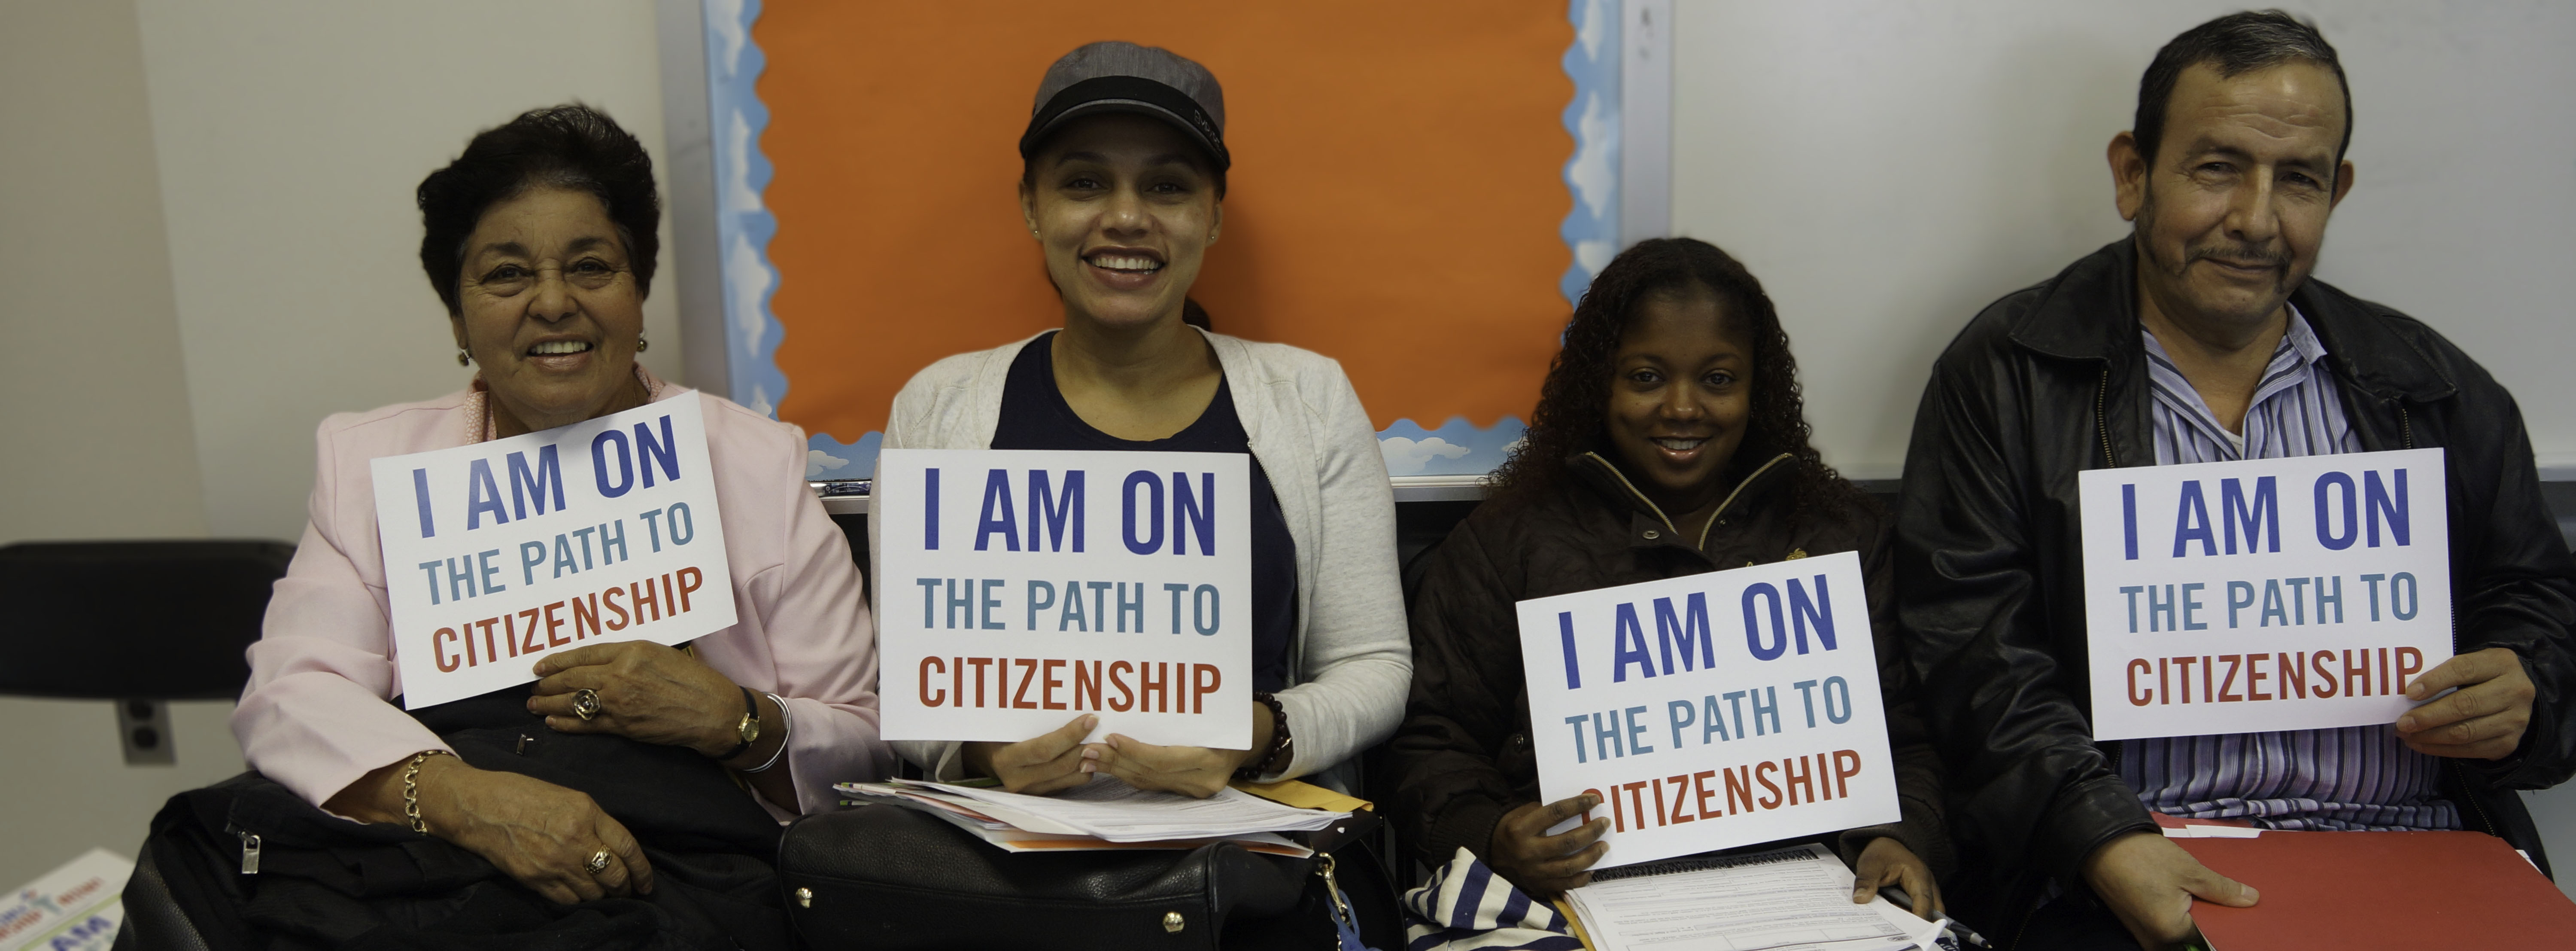 "Four people, three females and one male, sitting next to each other hold signs that say ""I am on the path to citizenship"""